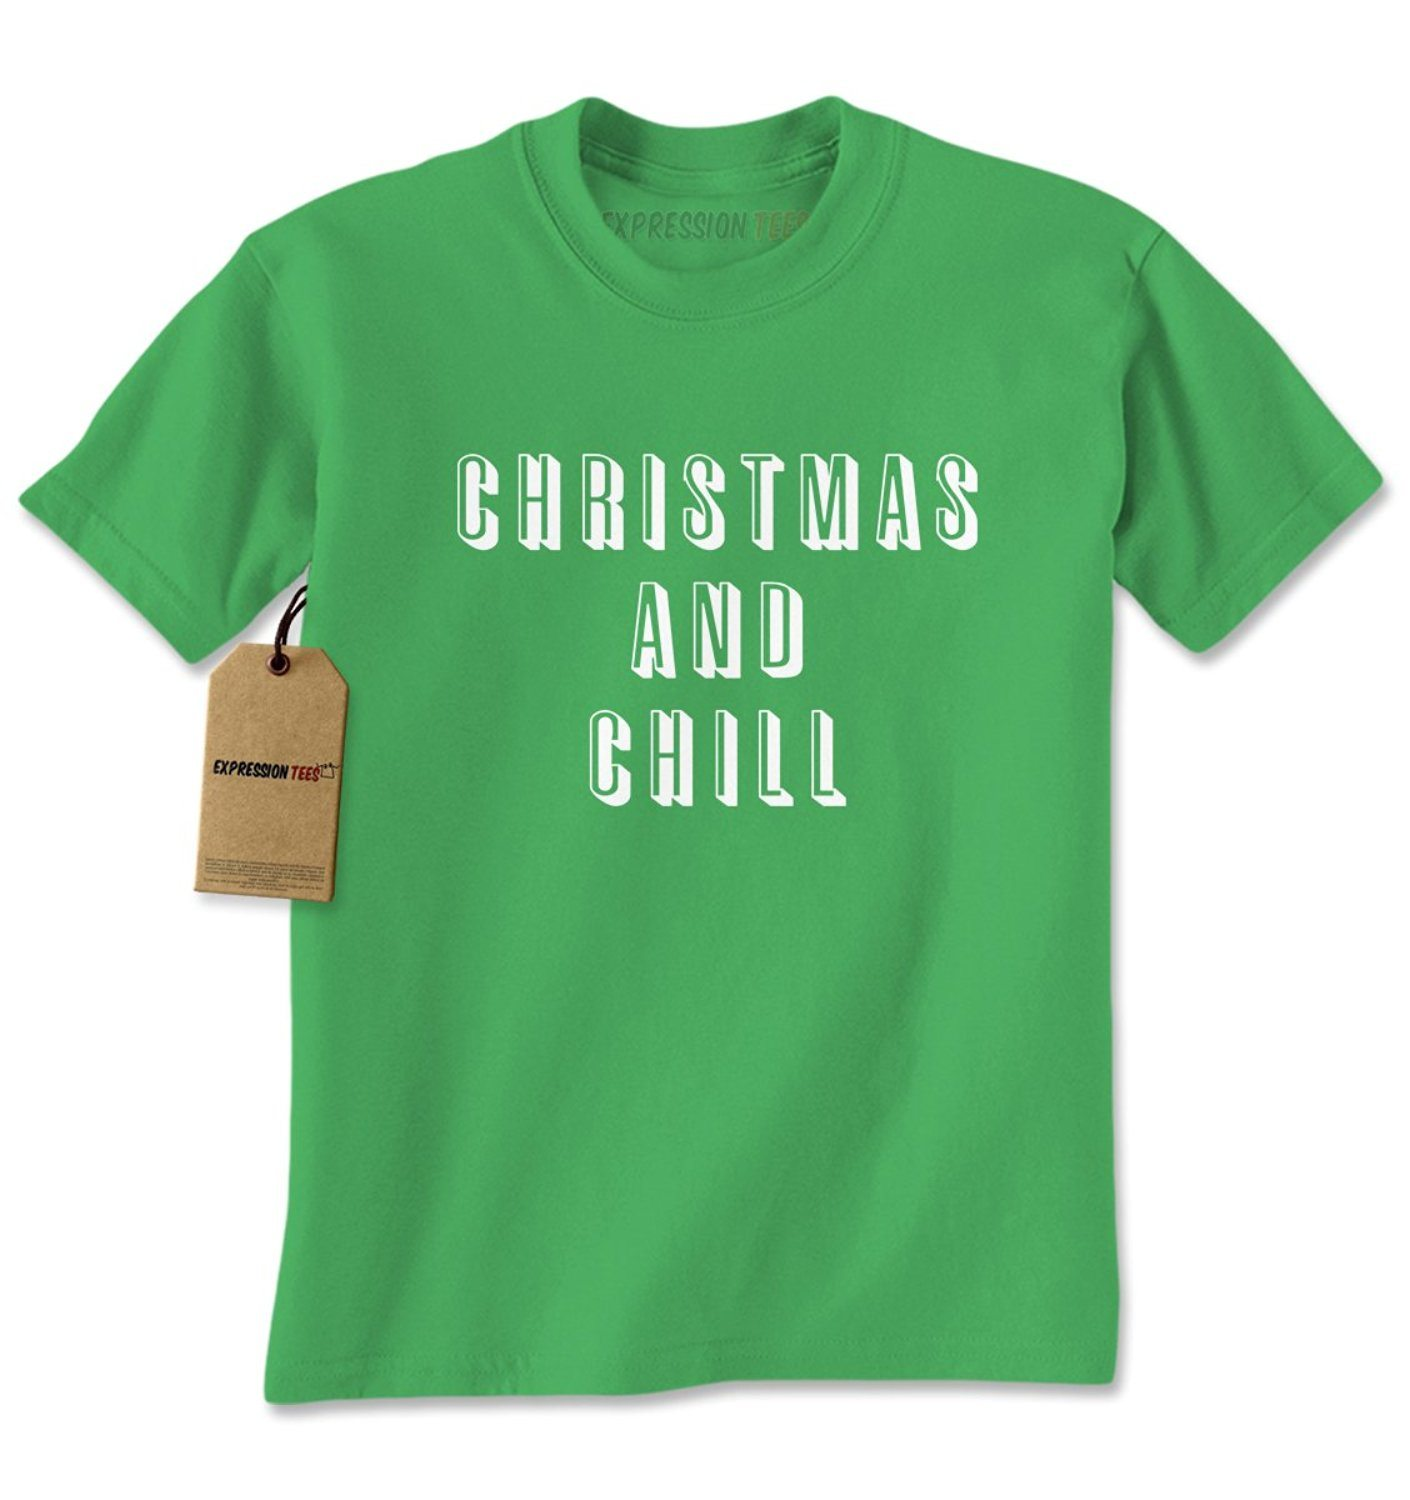 Expression Tees Christmas And Chill Mens